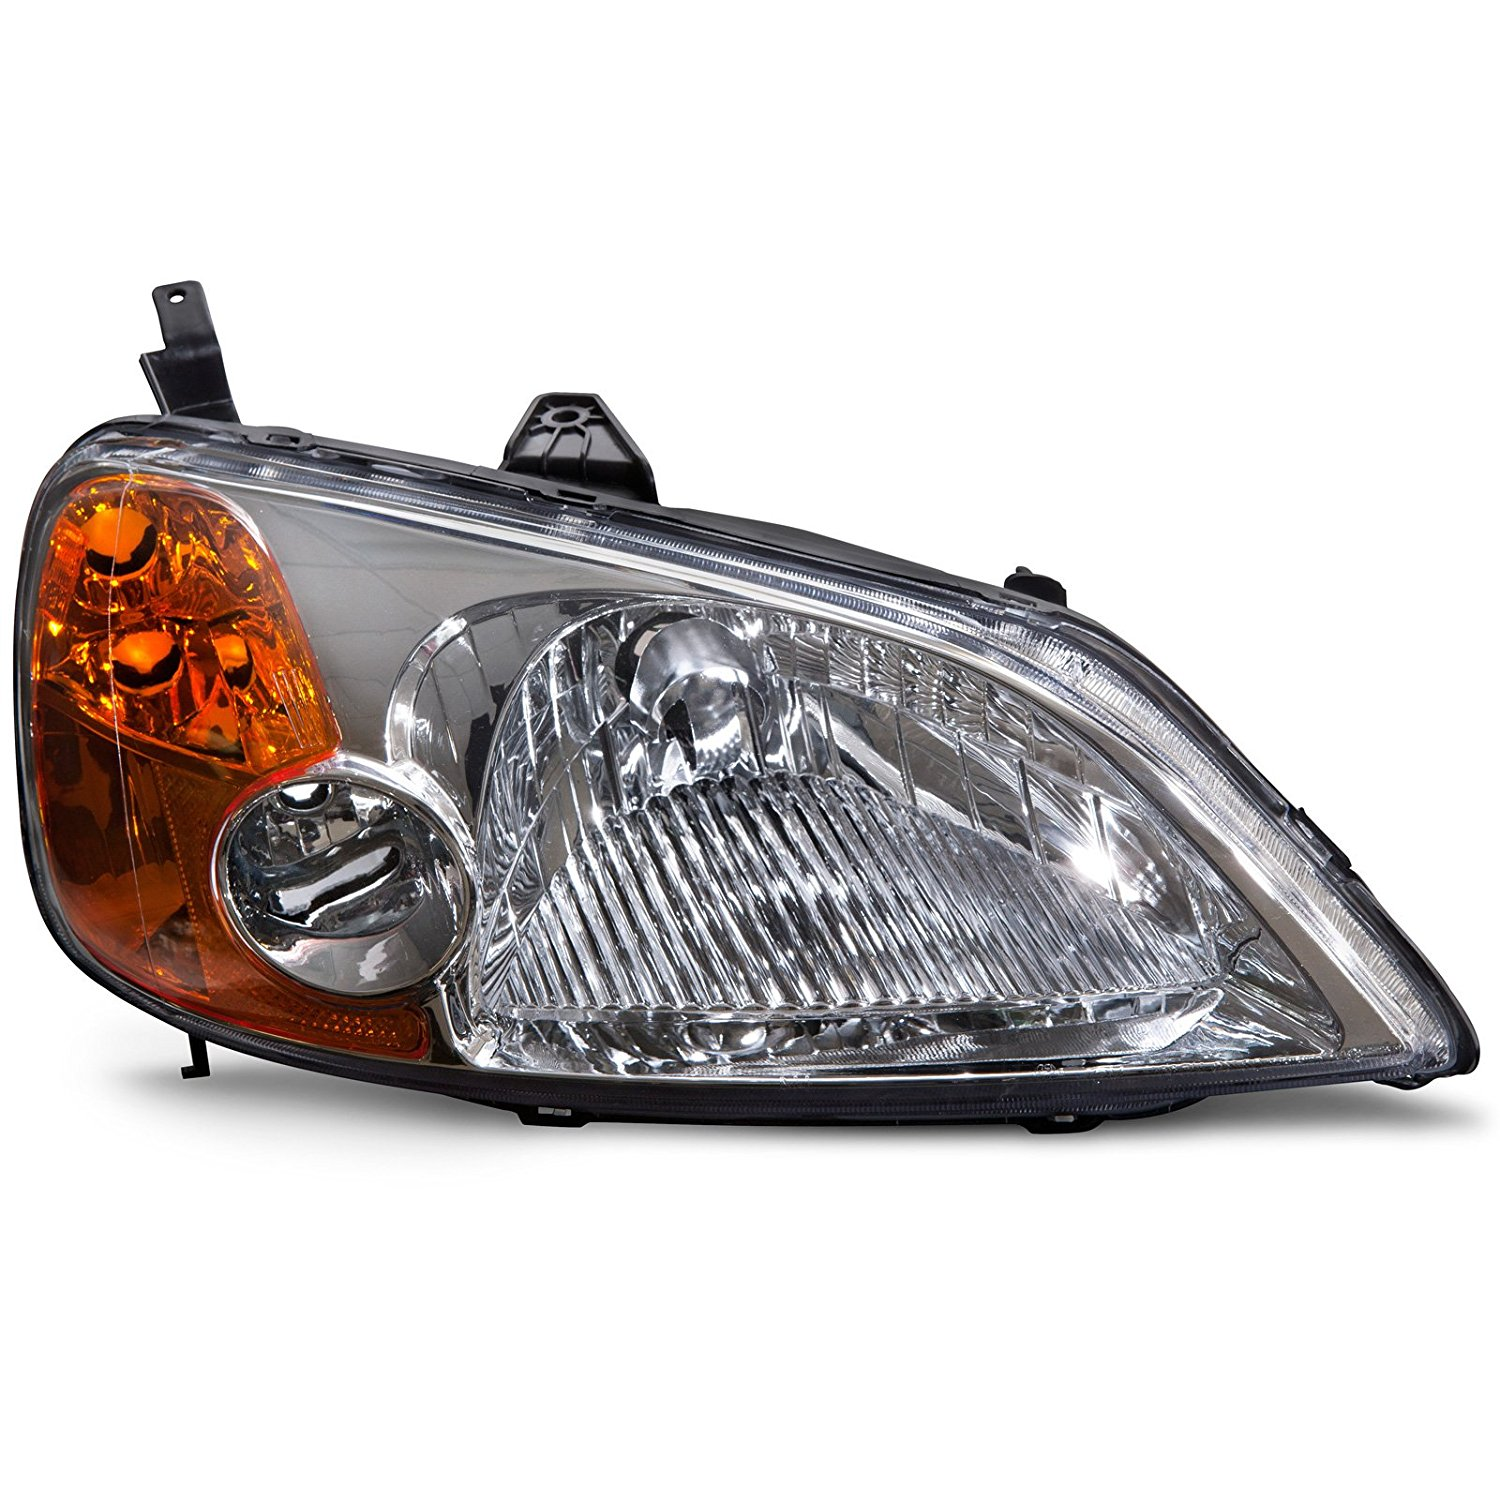 Honda Civic Sedan/Hybrid Model Headlight Headlamp Passenger Right New